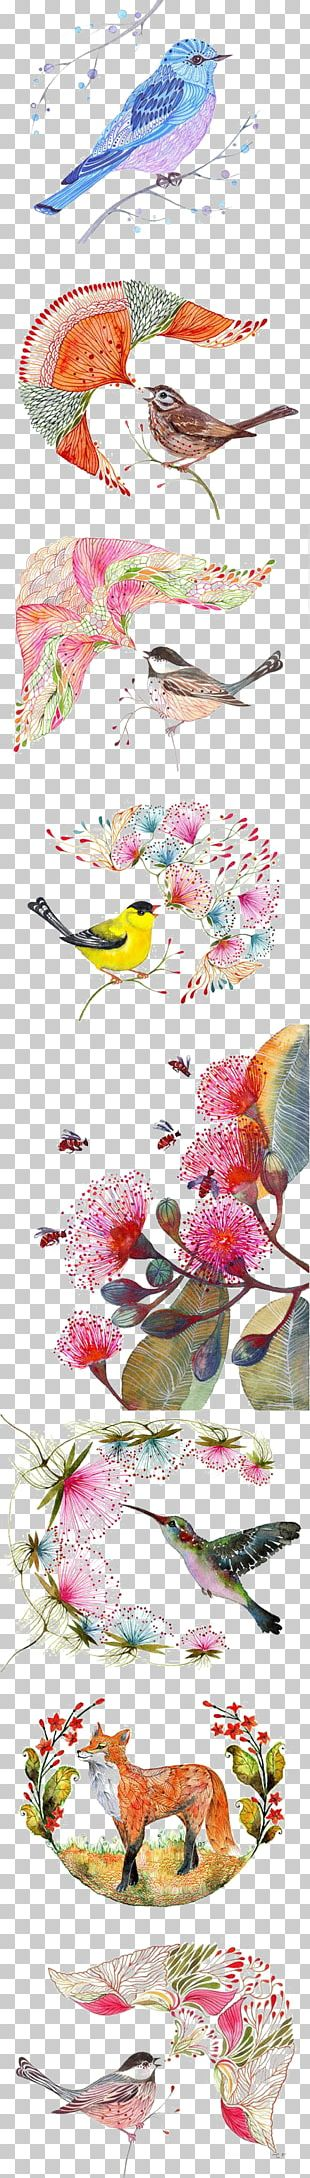 Bird Owl Drawing Watercolor Painting Illustration PNG